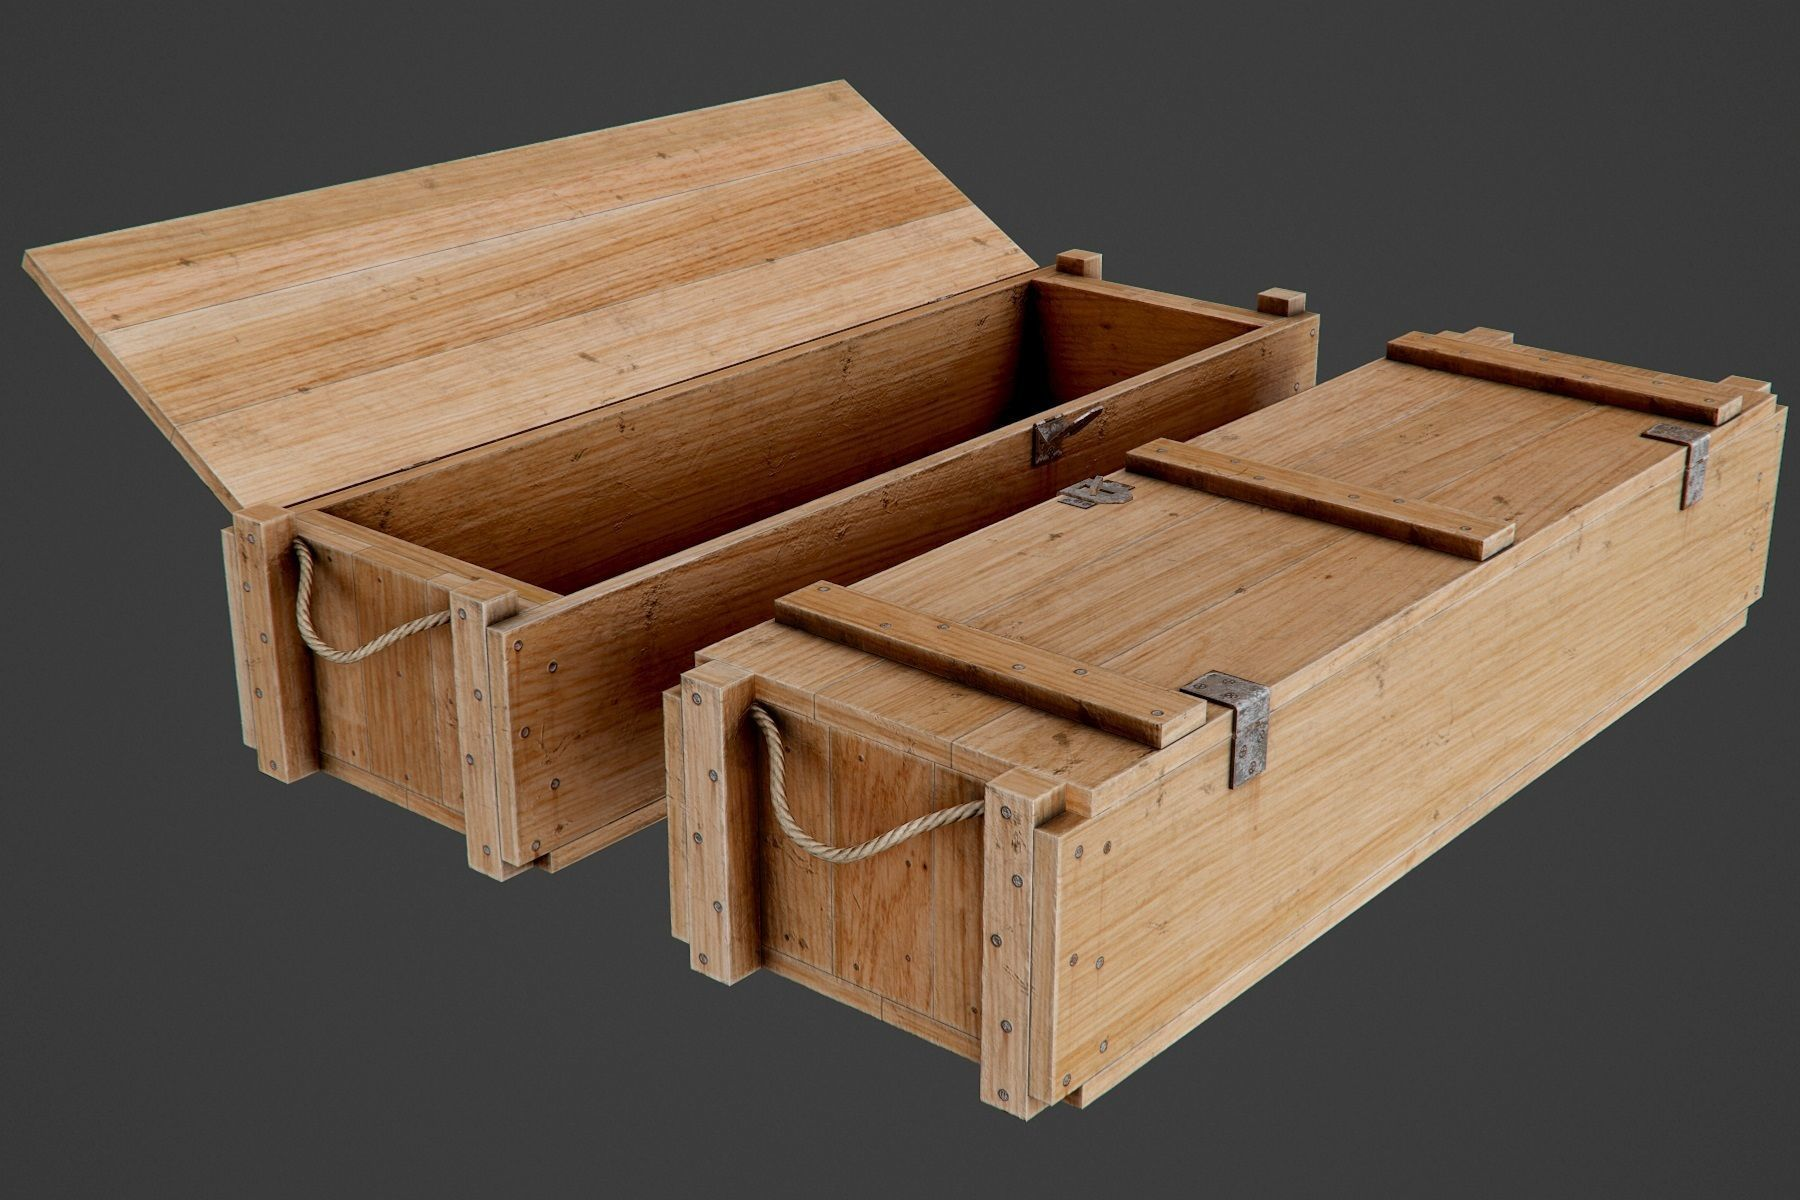 wooden ammo box pbr game ready 3d model cgtrader